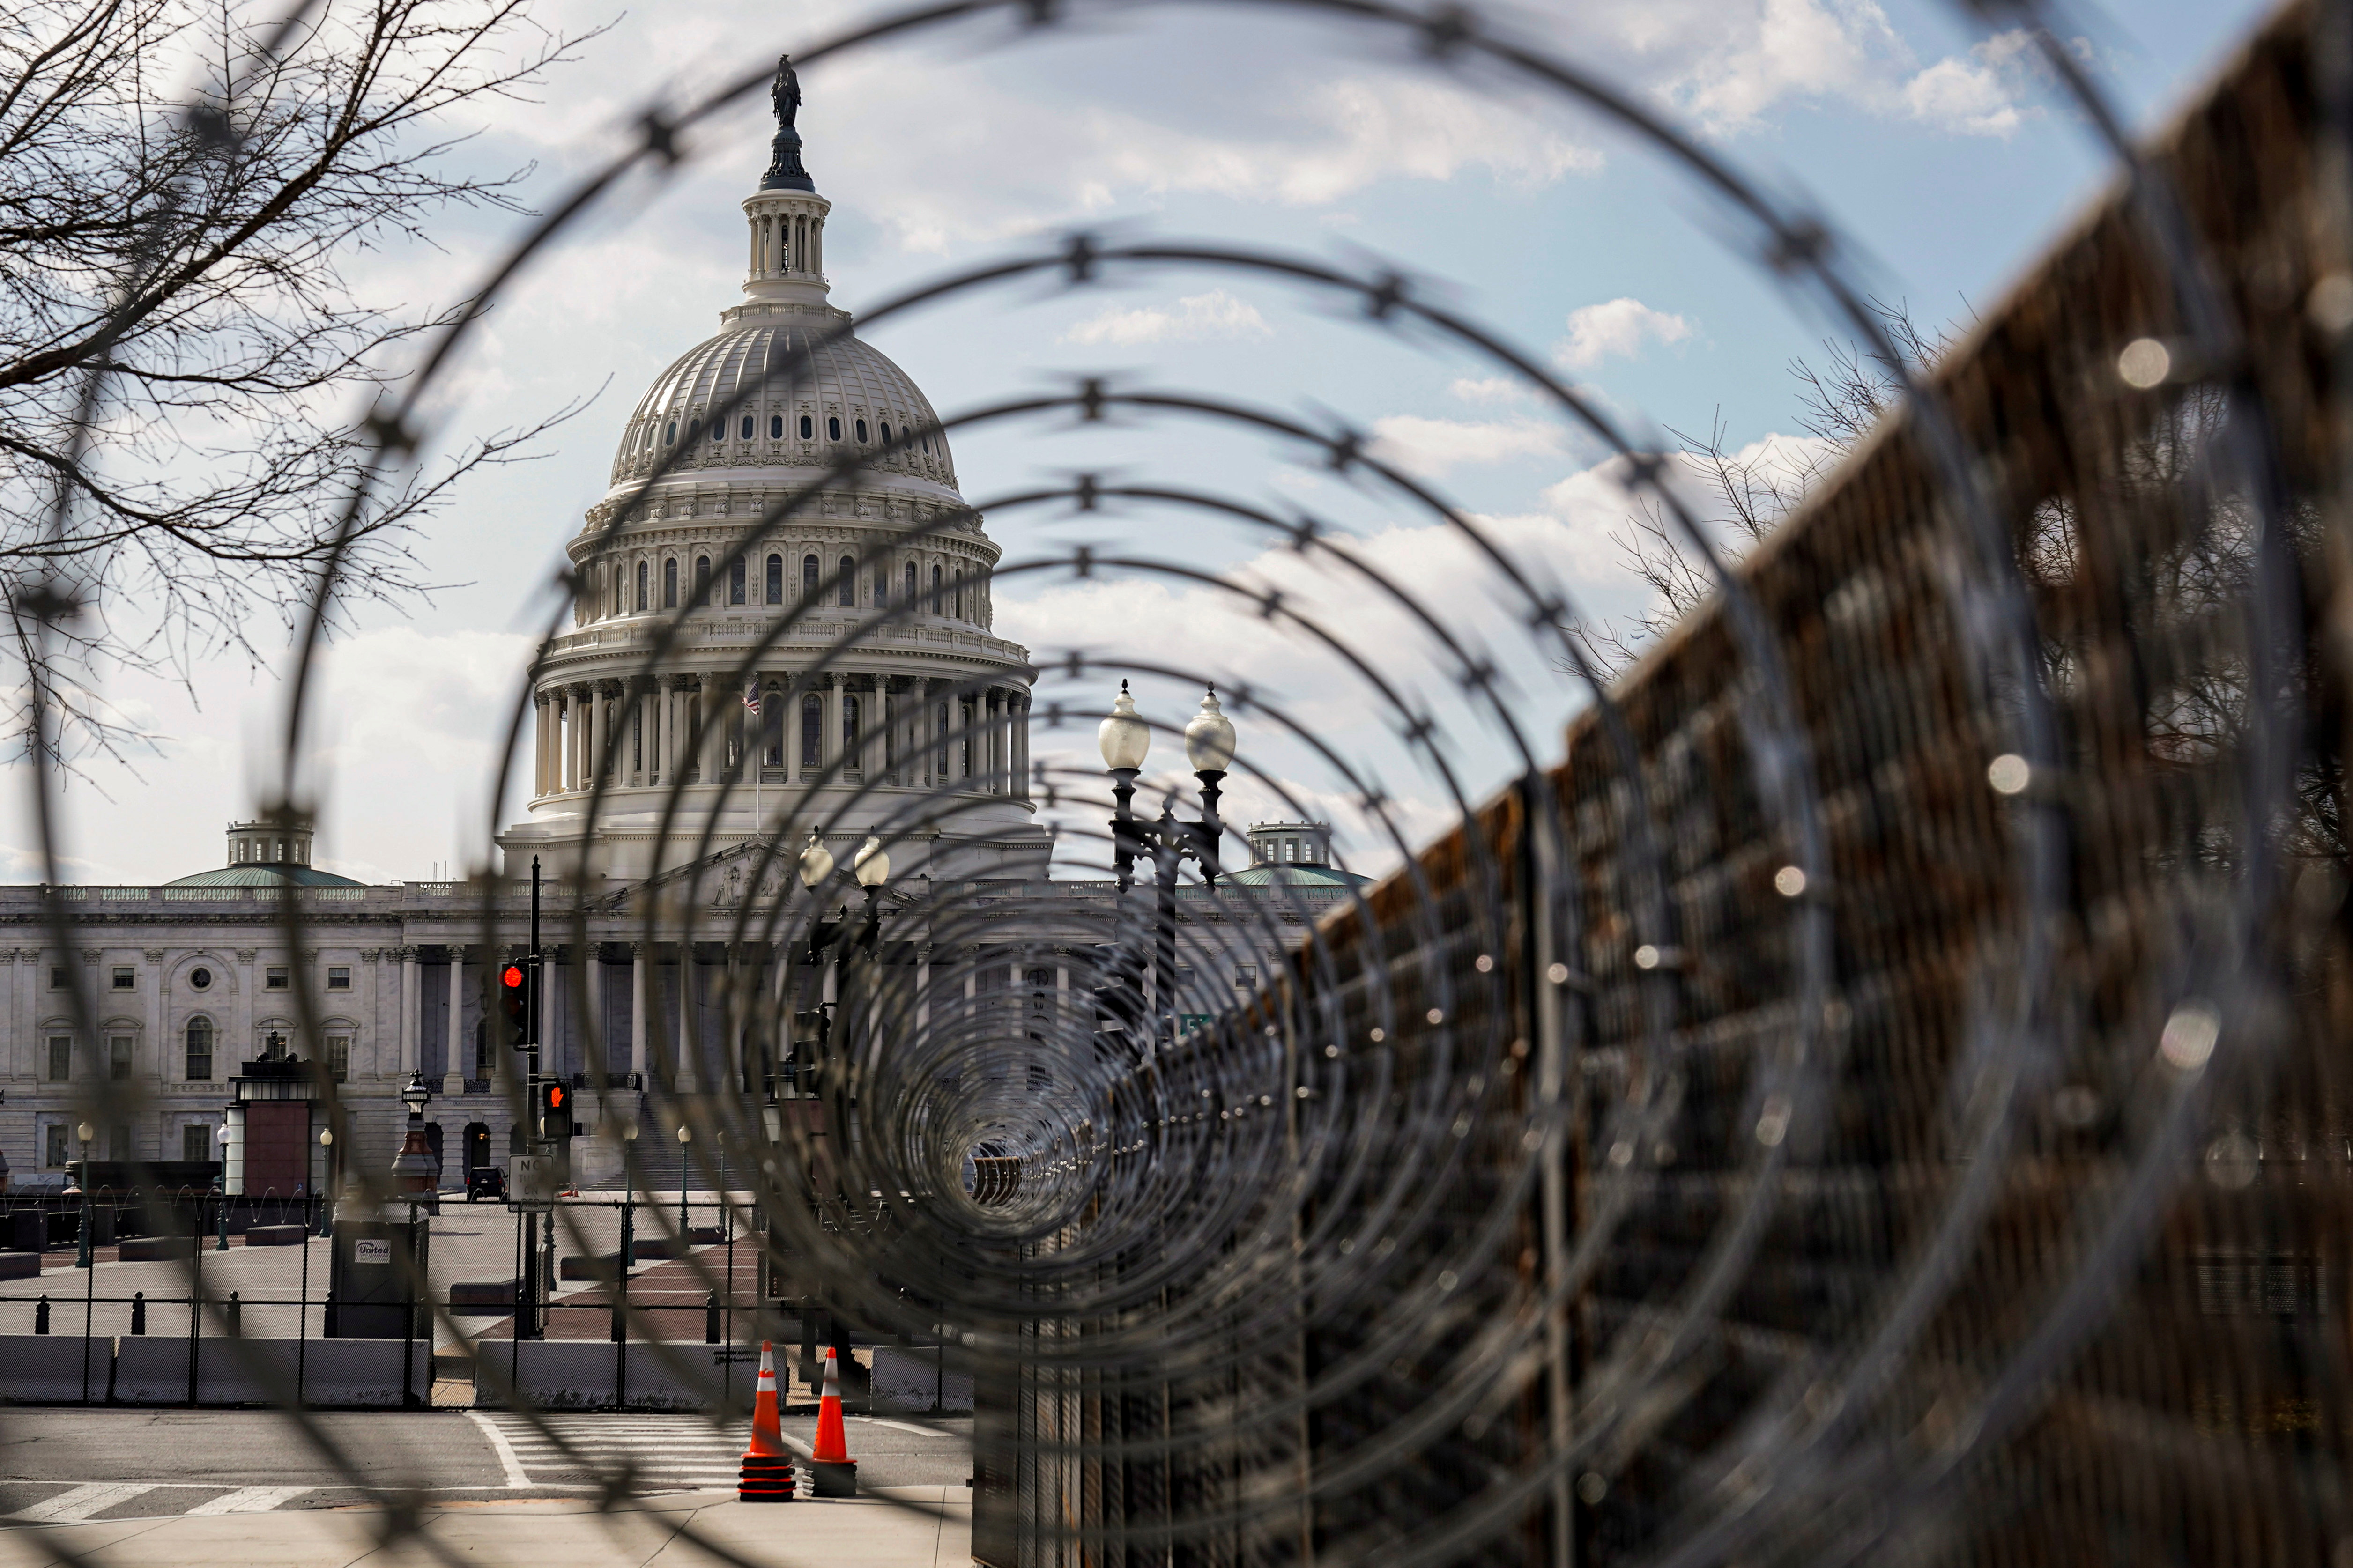 The U.S. Capitol is seen through razor wire after police warned that a militia group might try to attack the U.S. Capitol in Washington, U.S., March 4, 2021. REUTERS/Joshua Roberts/File Photo